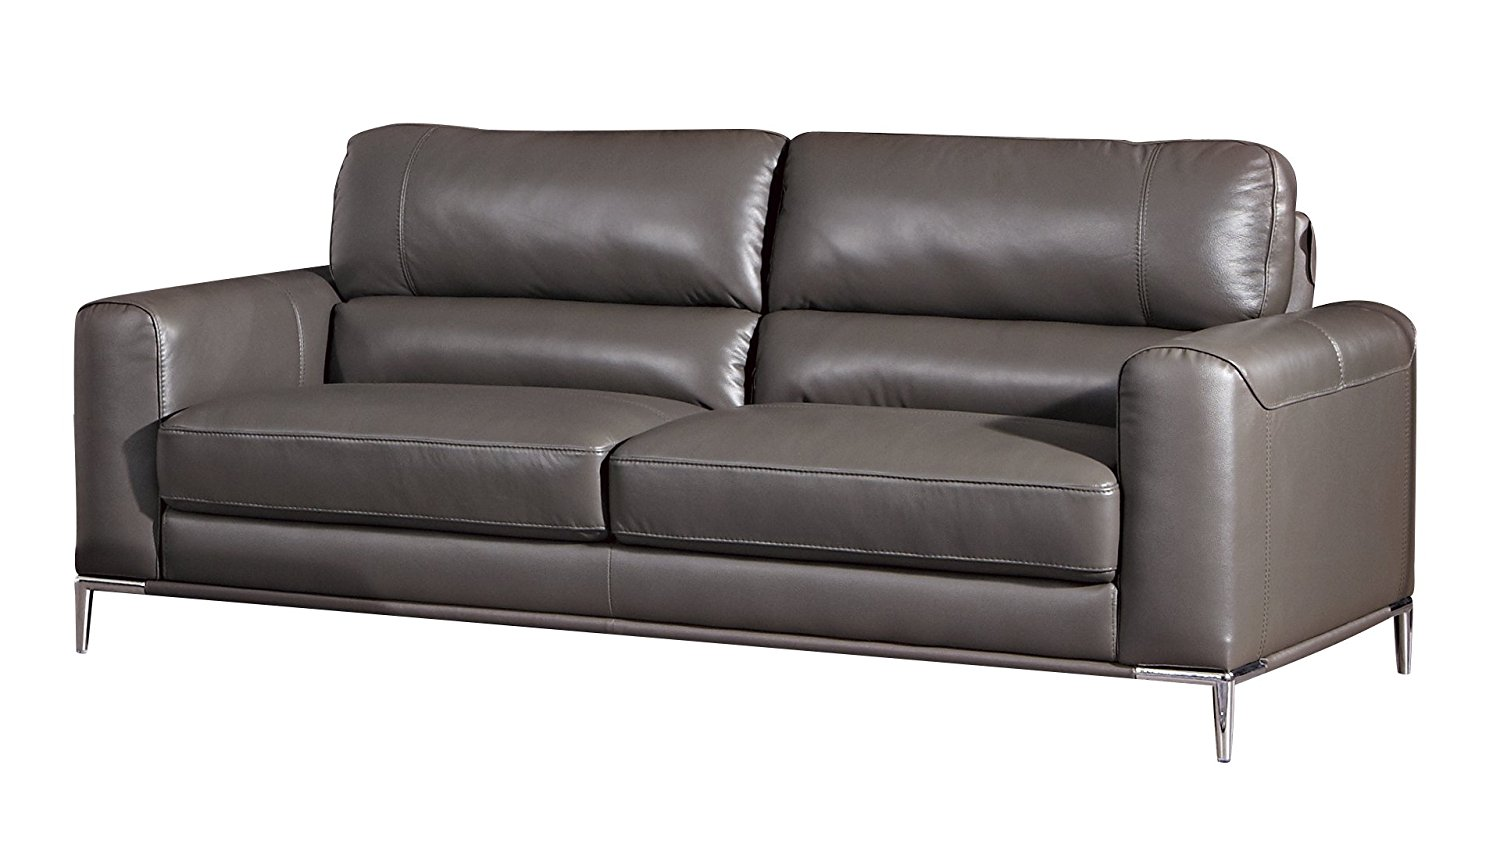 American Eagle Furniture Rodeo Collection Modern Top Grain Italian Leather 3 Person Living Room Leather Sofa, Taupe